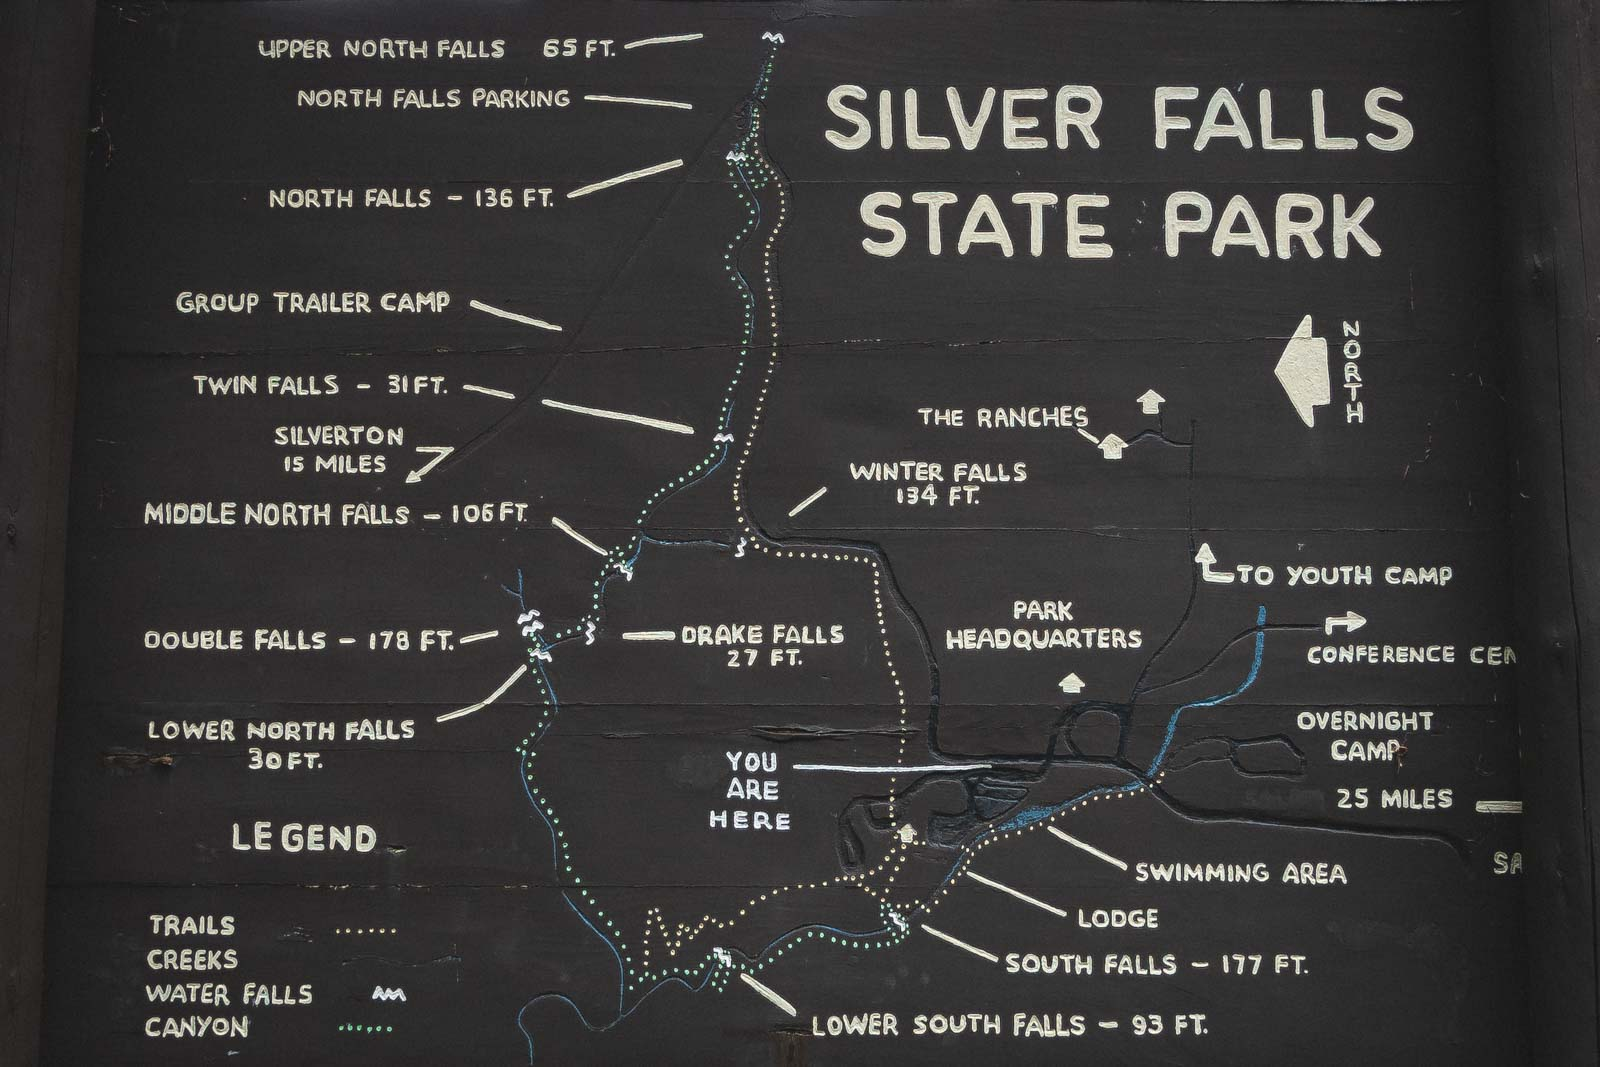 Use this map to guide you around the Trail of Ten Falls.